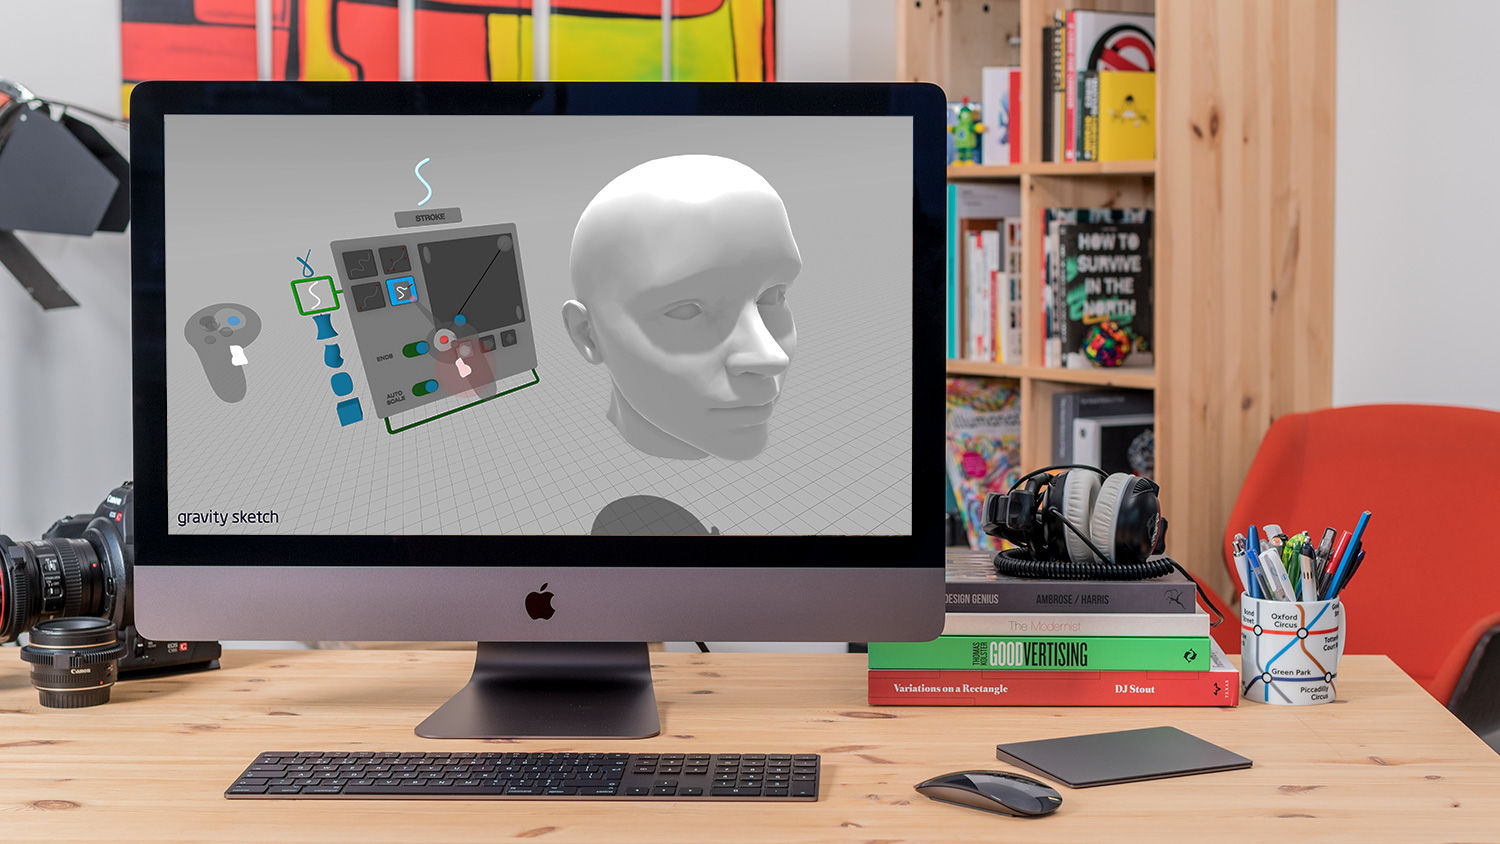 The 7 best tools for painting, 3D modelling and sculpting in VR